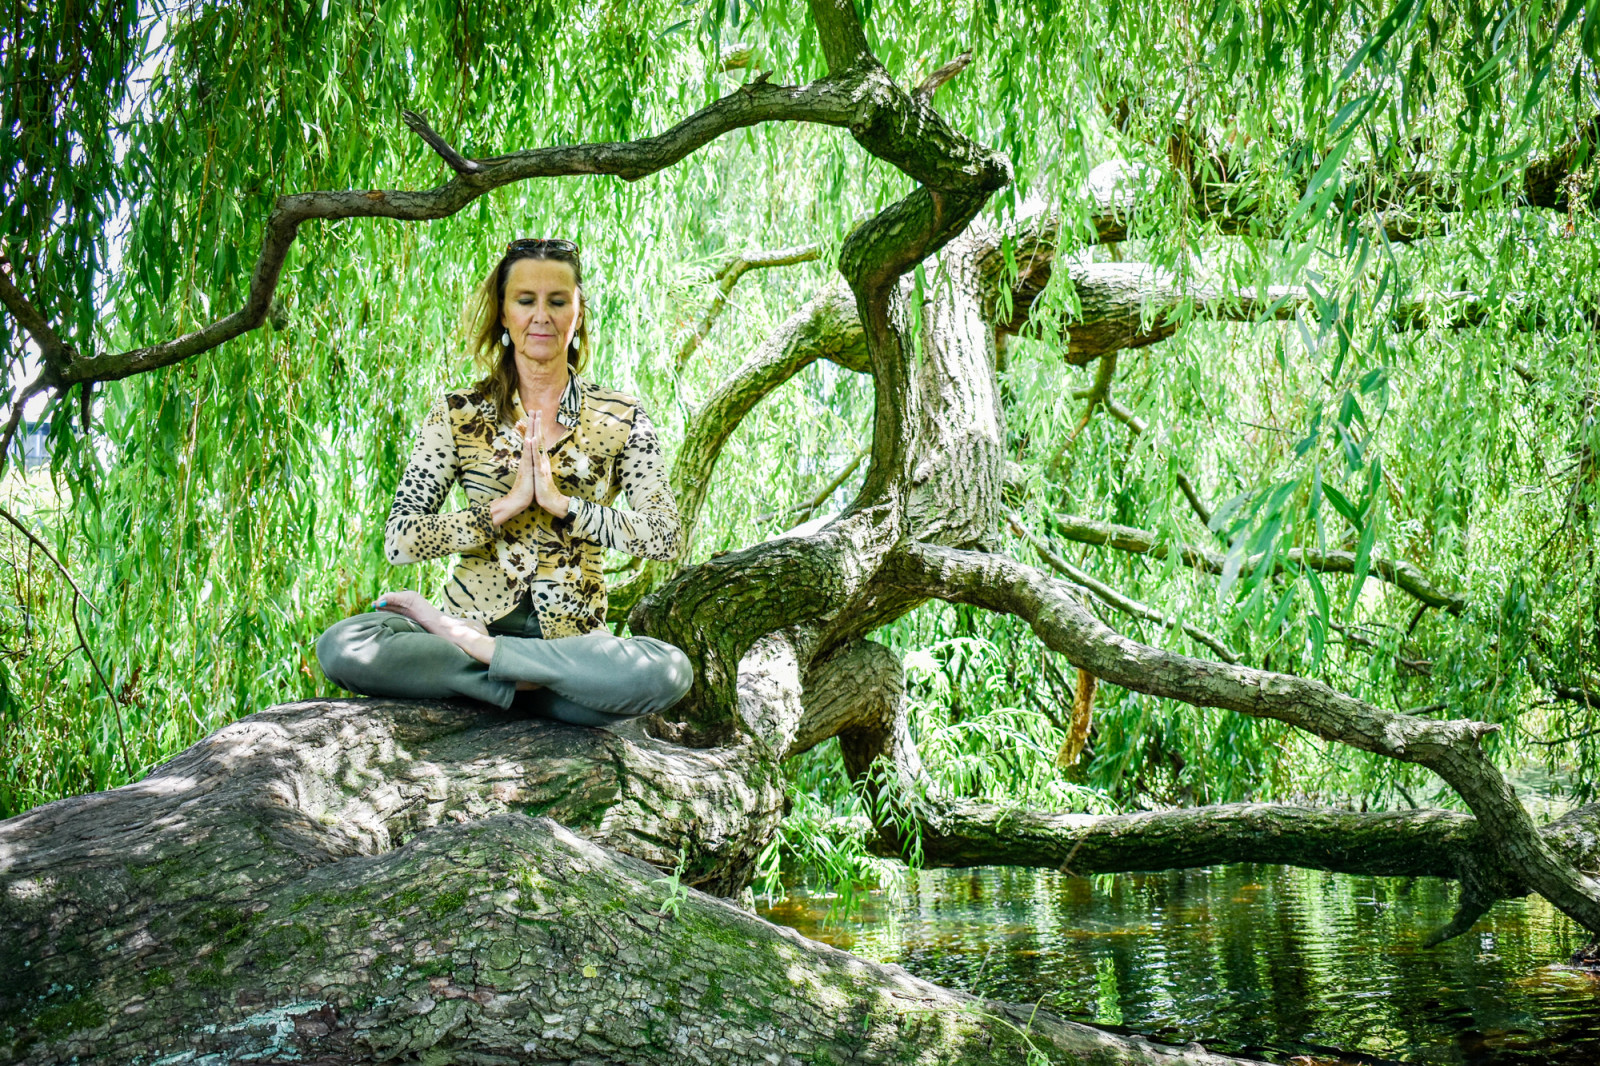 Yoga coach Suzy-Yoga Suzanna in Amsterdam on tree